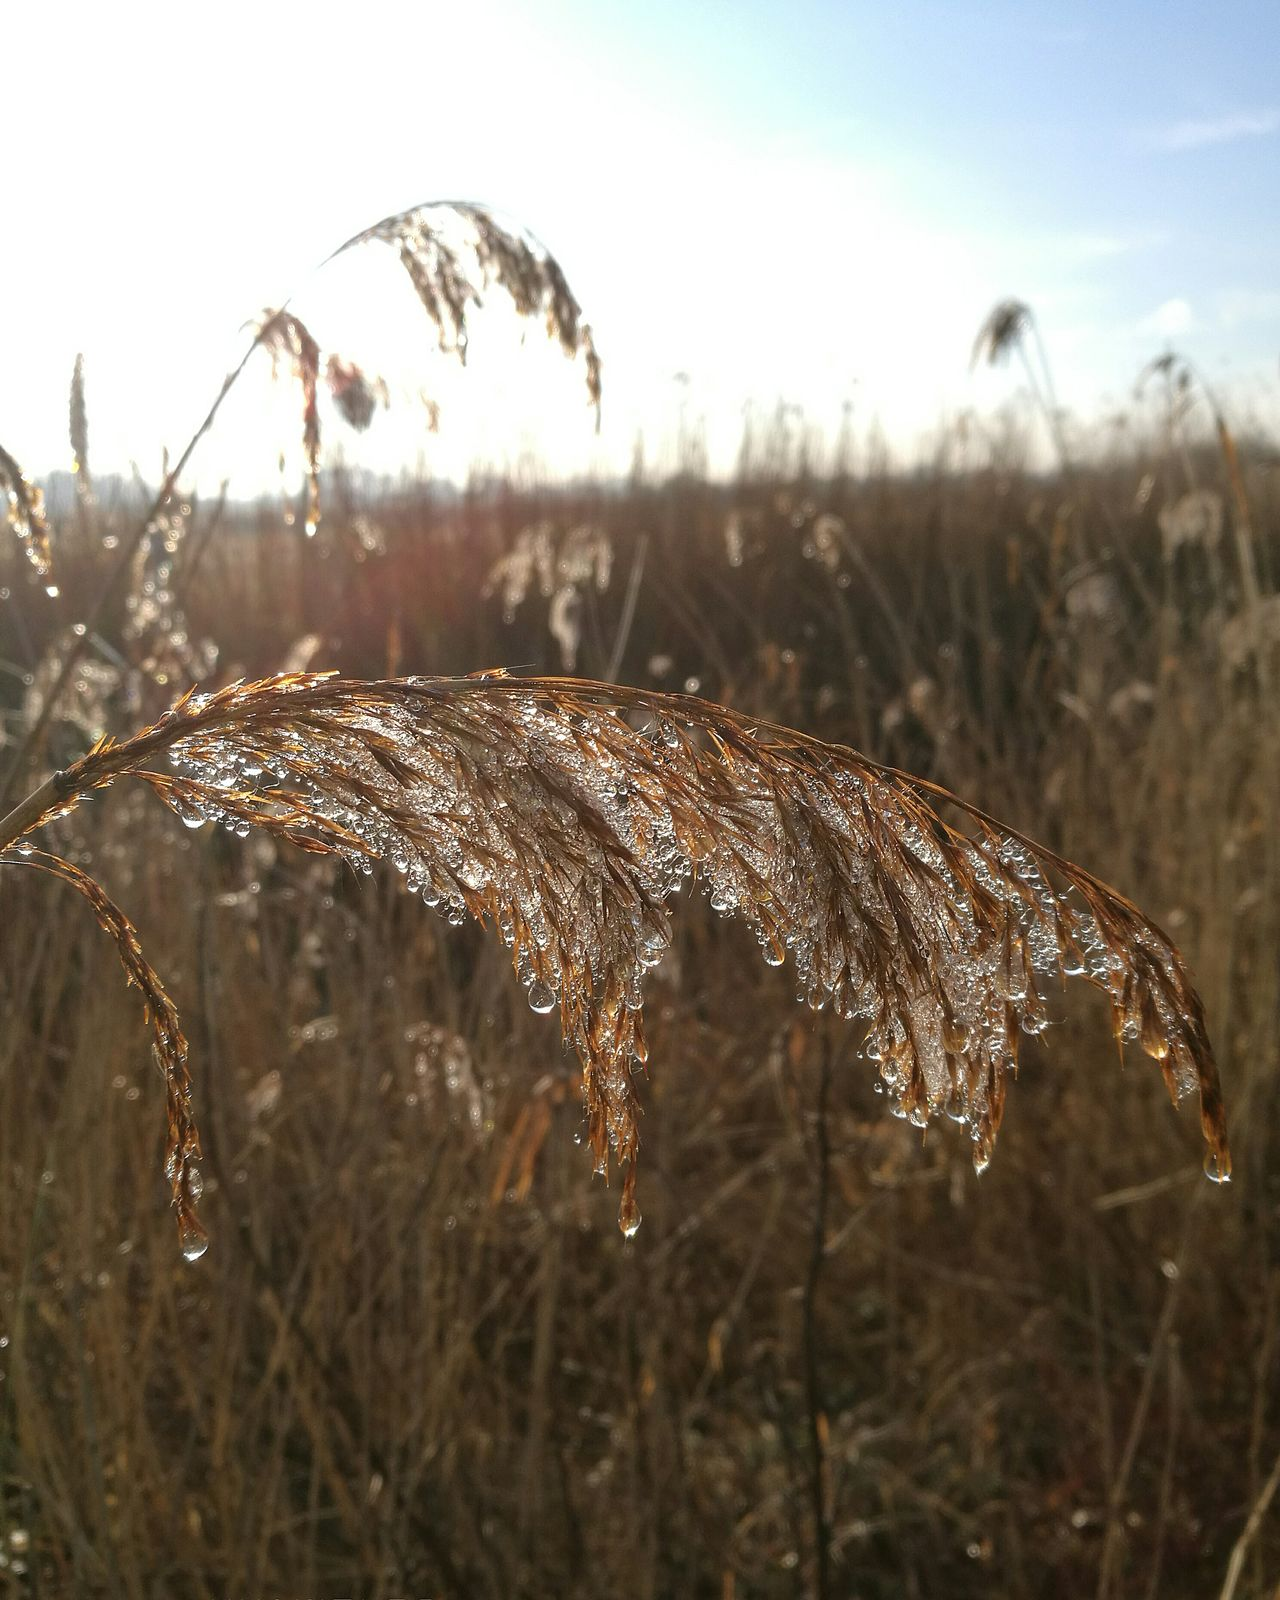 A frosty morning walk Nature Focus On Foreground Close-up Tranquility No People Sunlight Outdoors Sunset Plant Day Tranquil Scene Sky Beauty In Nature